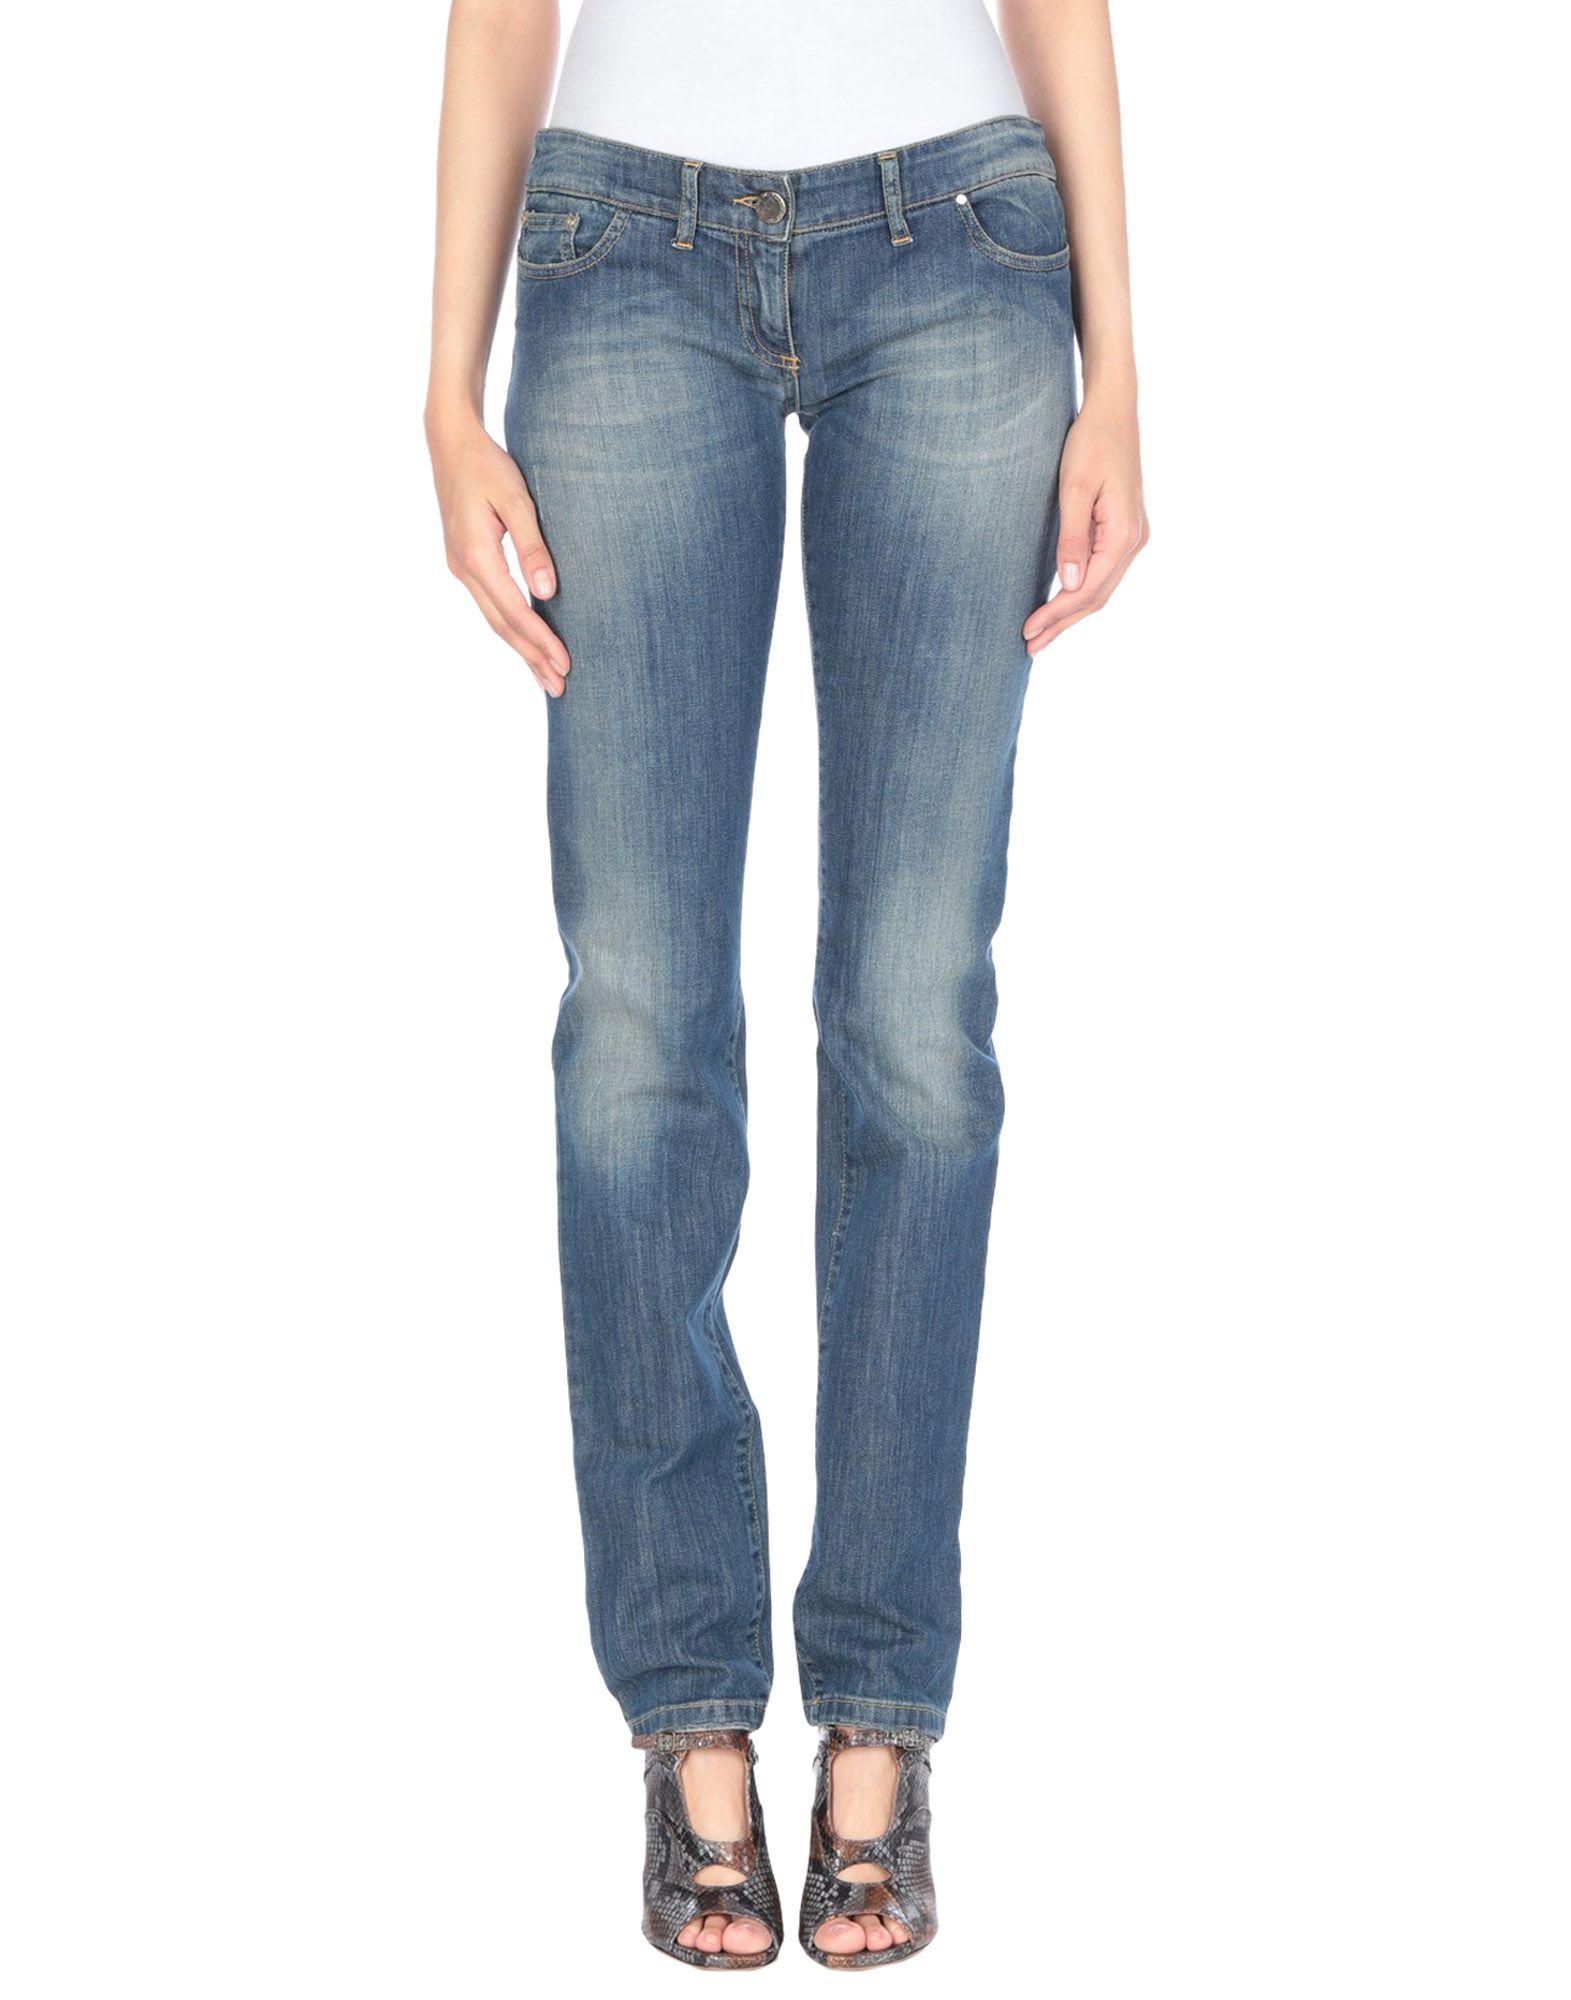 ELISABETTA FRANCHI JEANS for CELYN B. Джинсовые брюки elisabetta franchi jeans for celyn b брюки капри